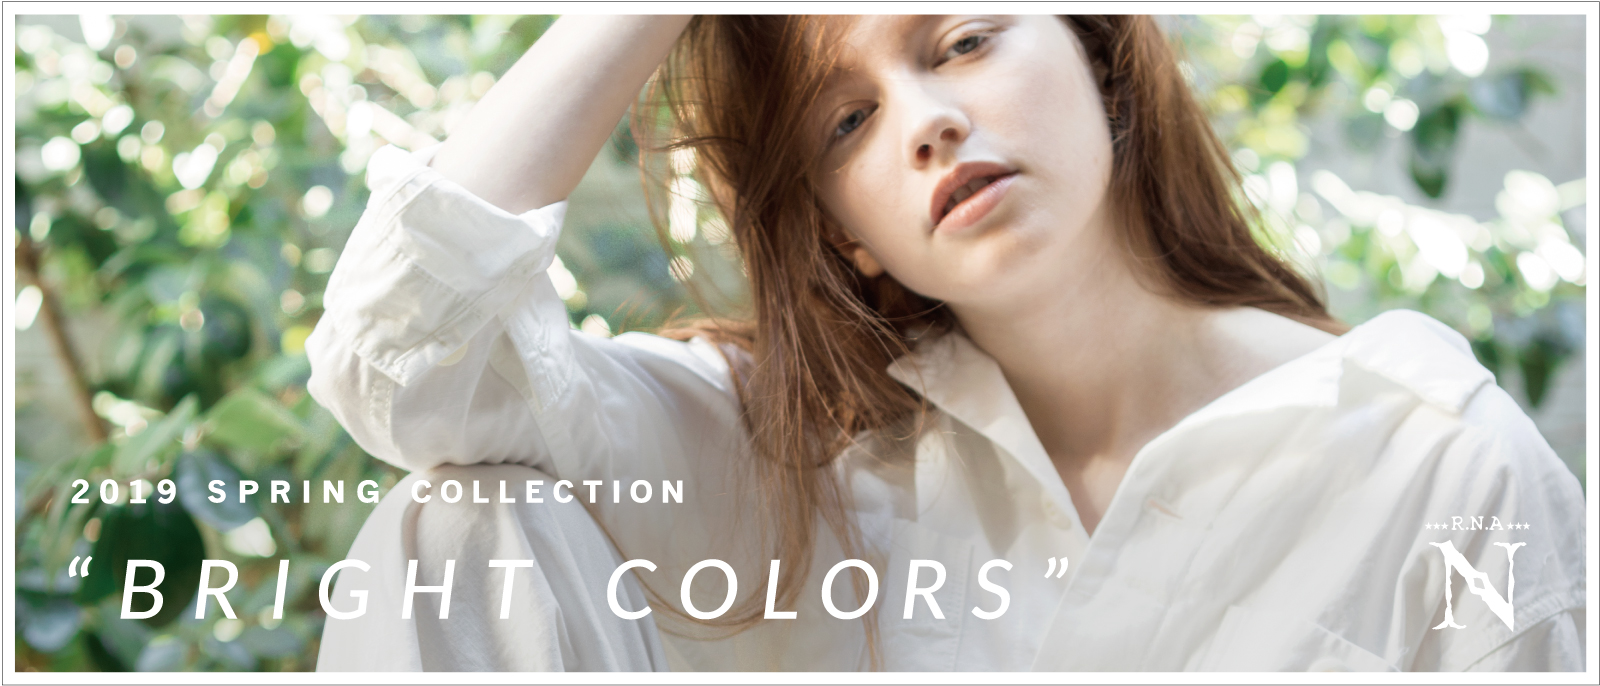 RNA-N 2019 SPRING COLLECTION